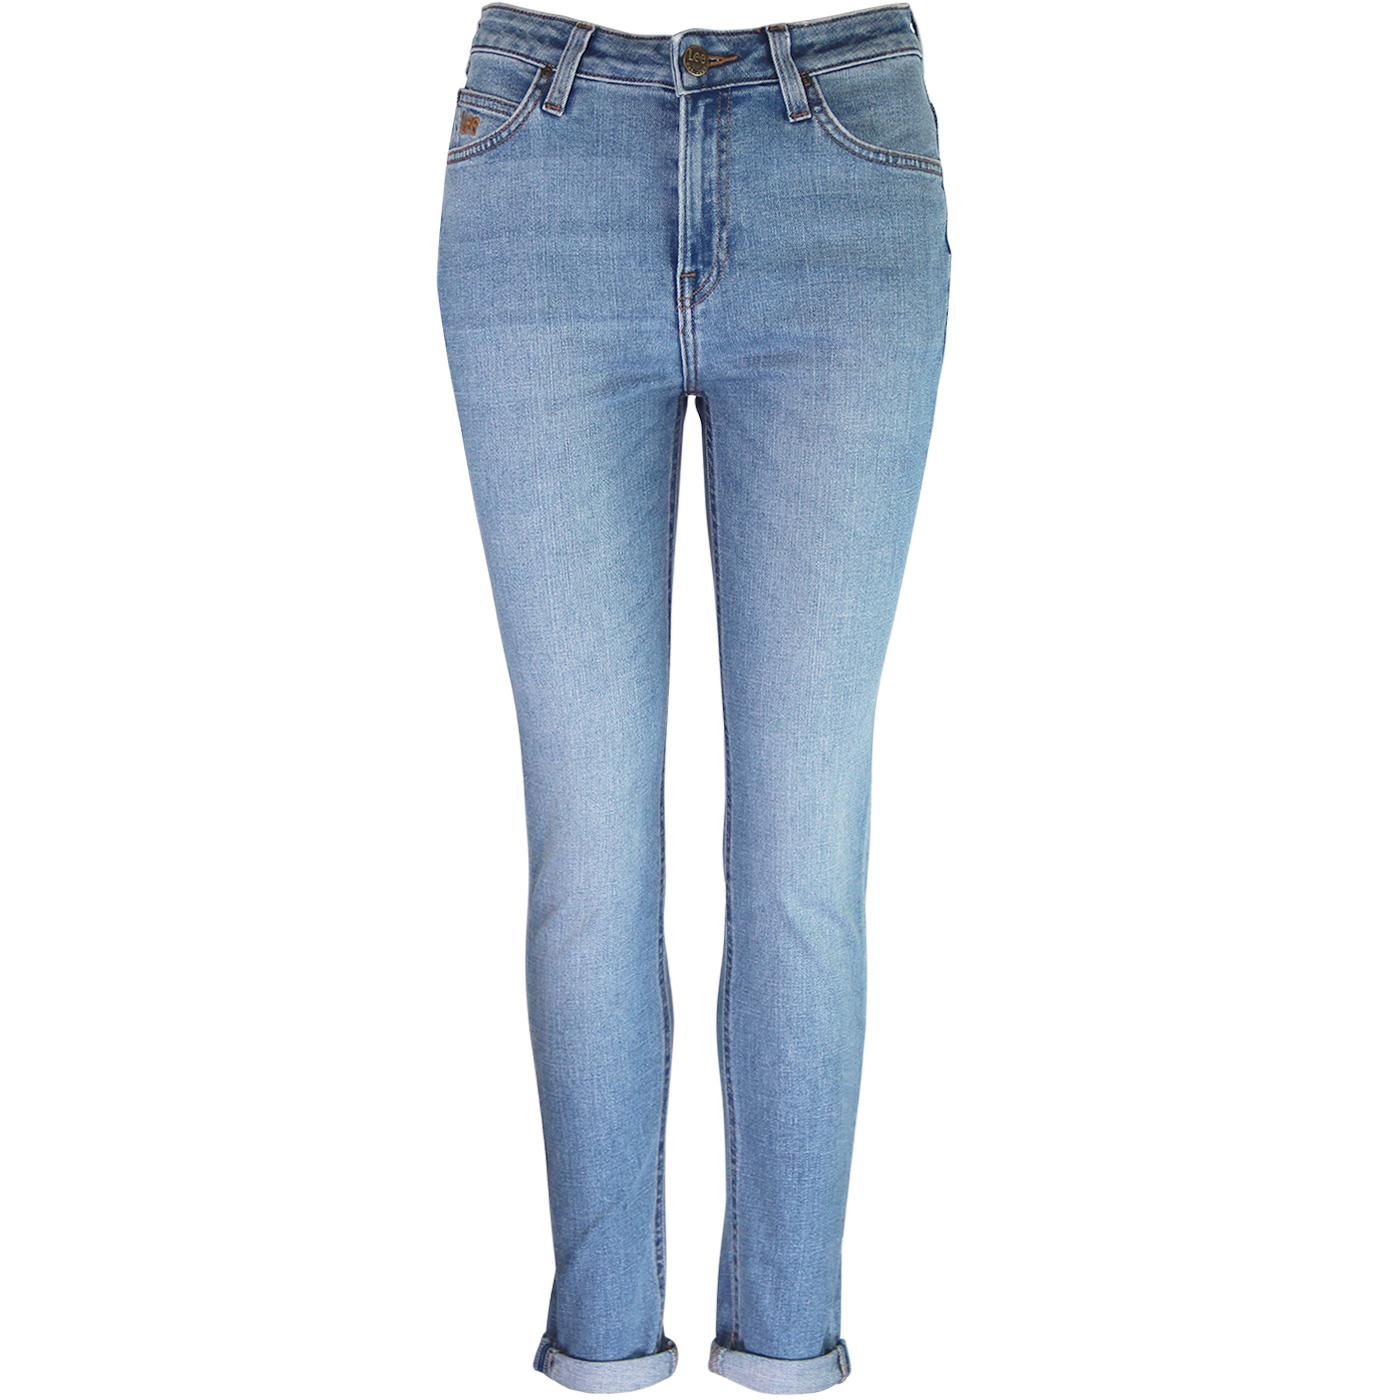 Scarlett High LEE Skinny High Waist Jeans (Flight)